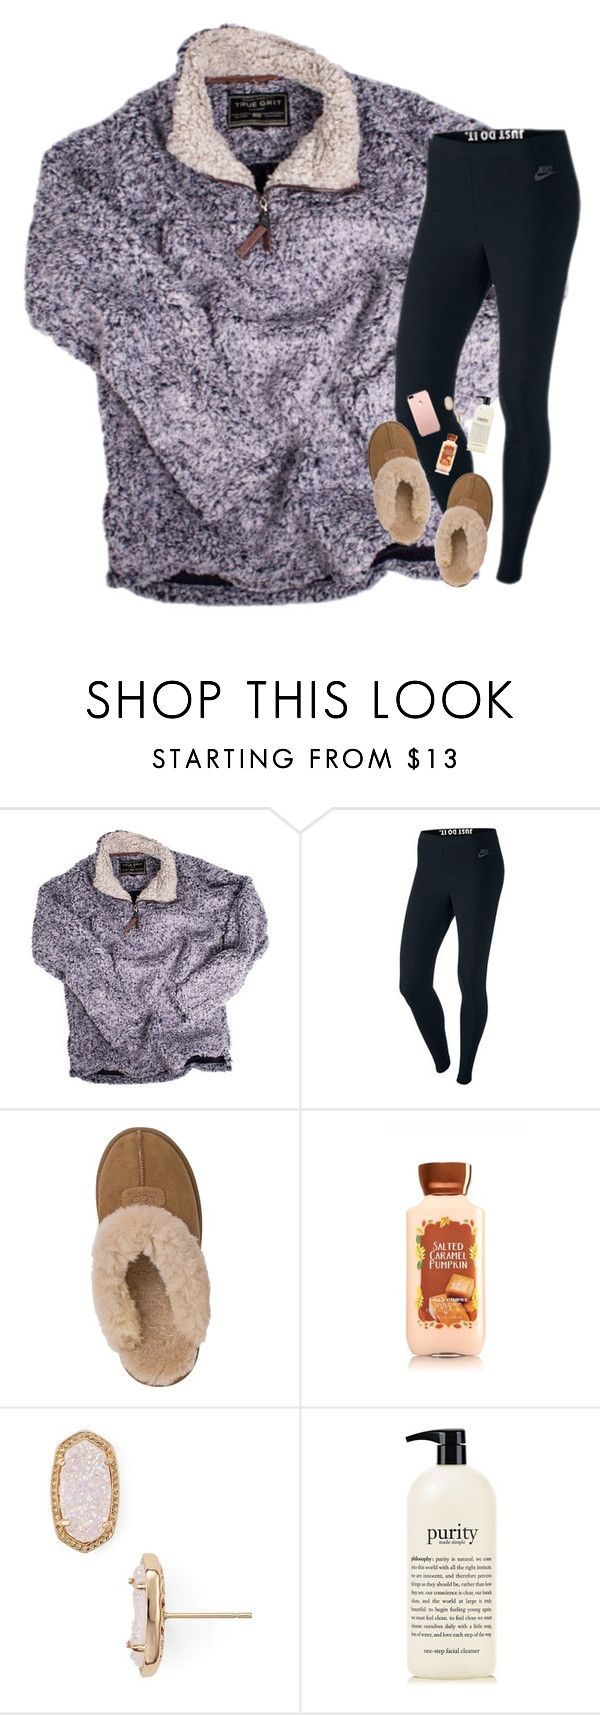 """mild concussion currently"" by mehanahan ❤ liked on Polyvore featuring True Grit, NIKE, UGG Australia, Kendra Scott and philosophy"